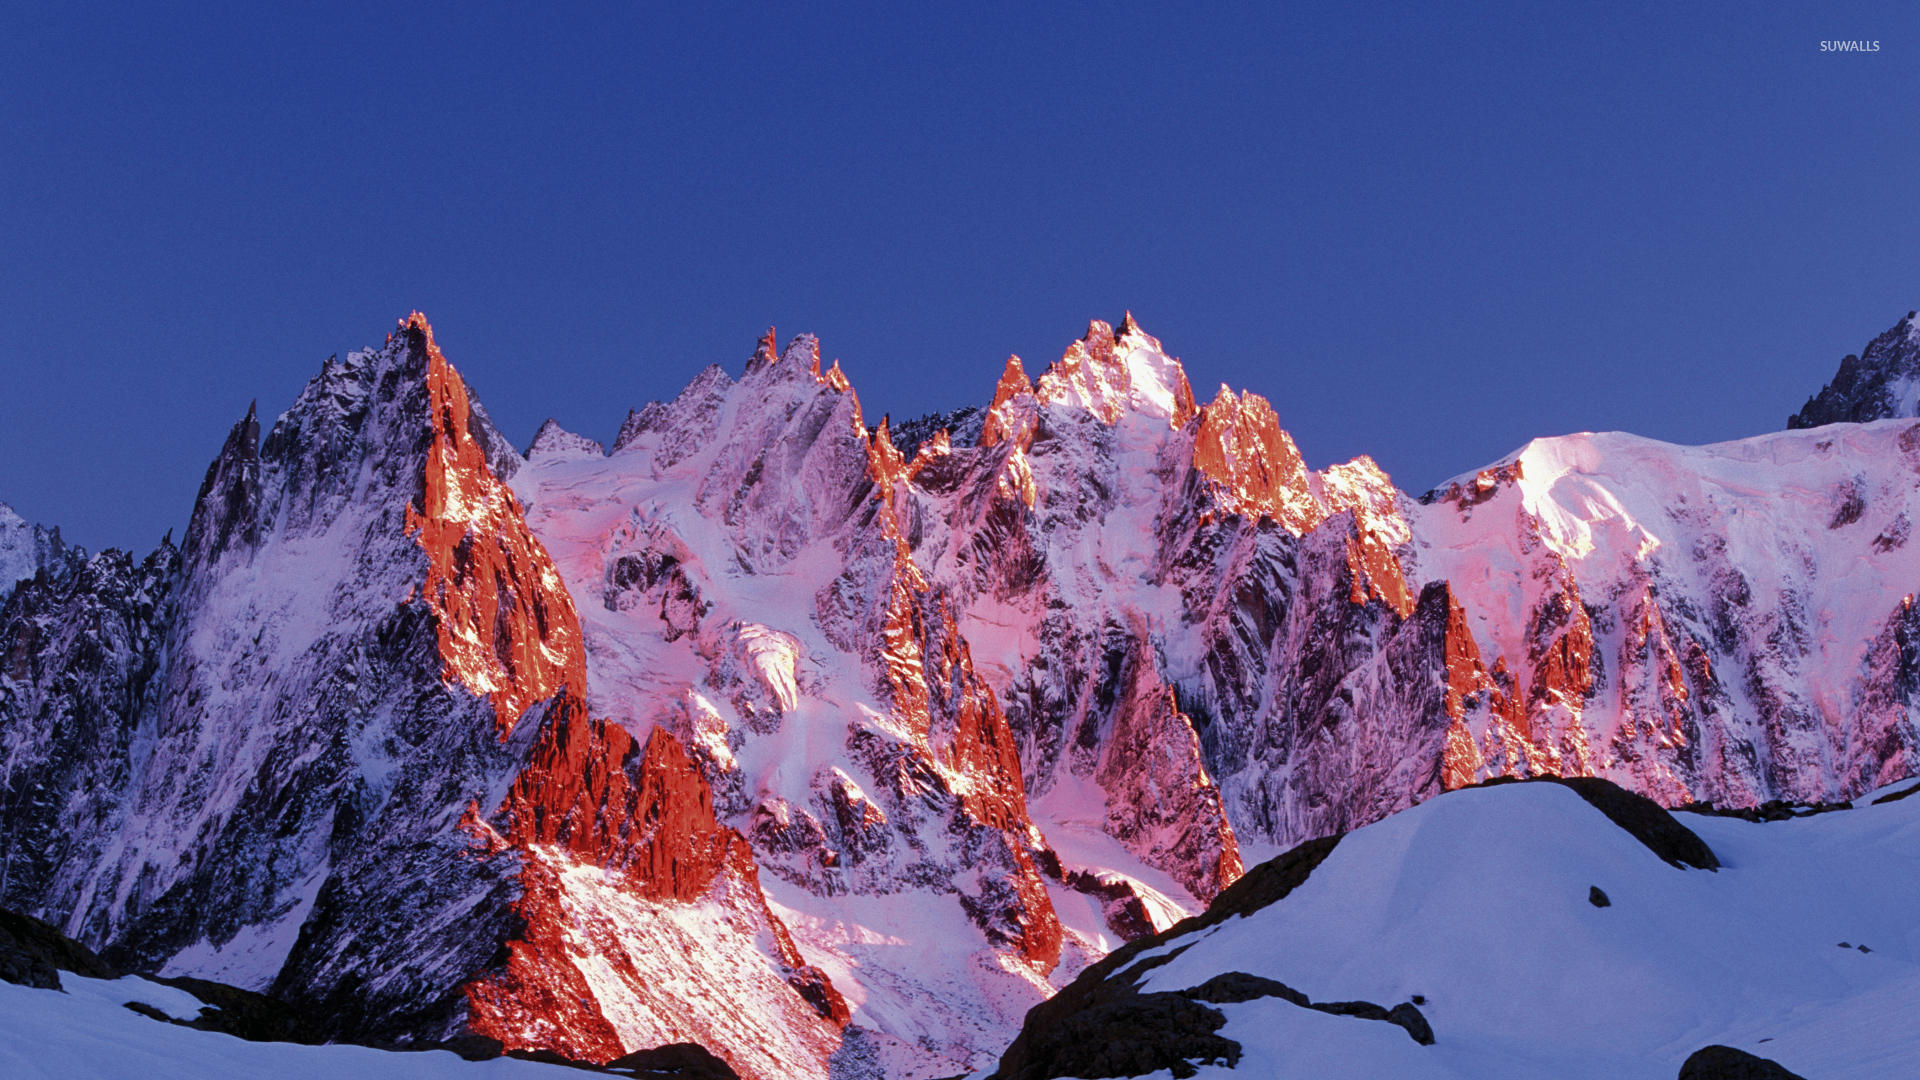 Fall Typography Laptop Wallpaper The Aiguilles Rouges Wallpaper Nature Wallpapers 8882